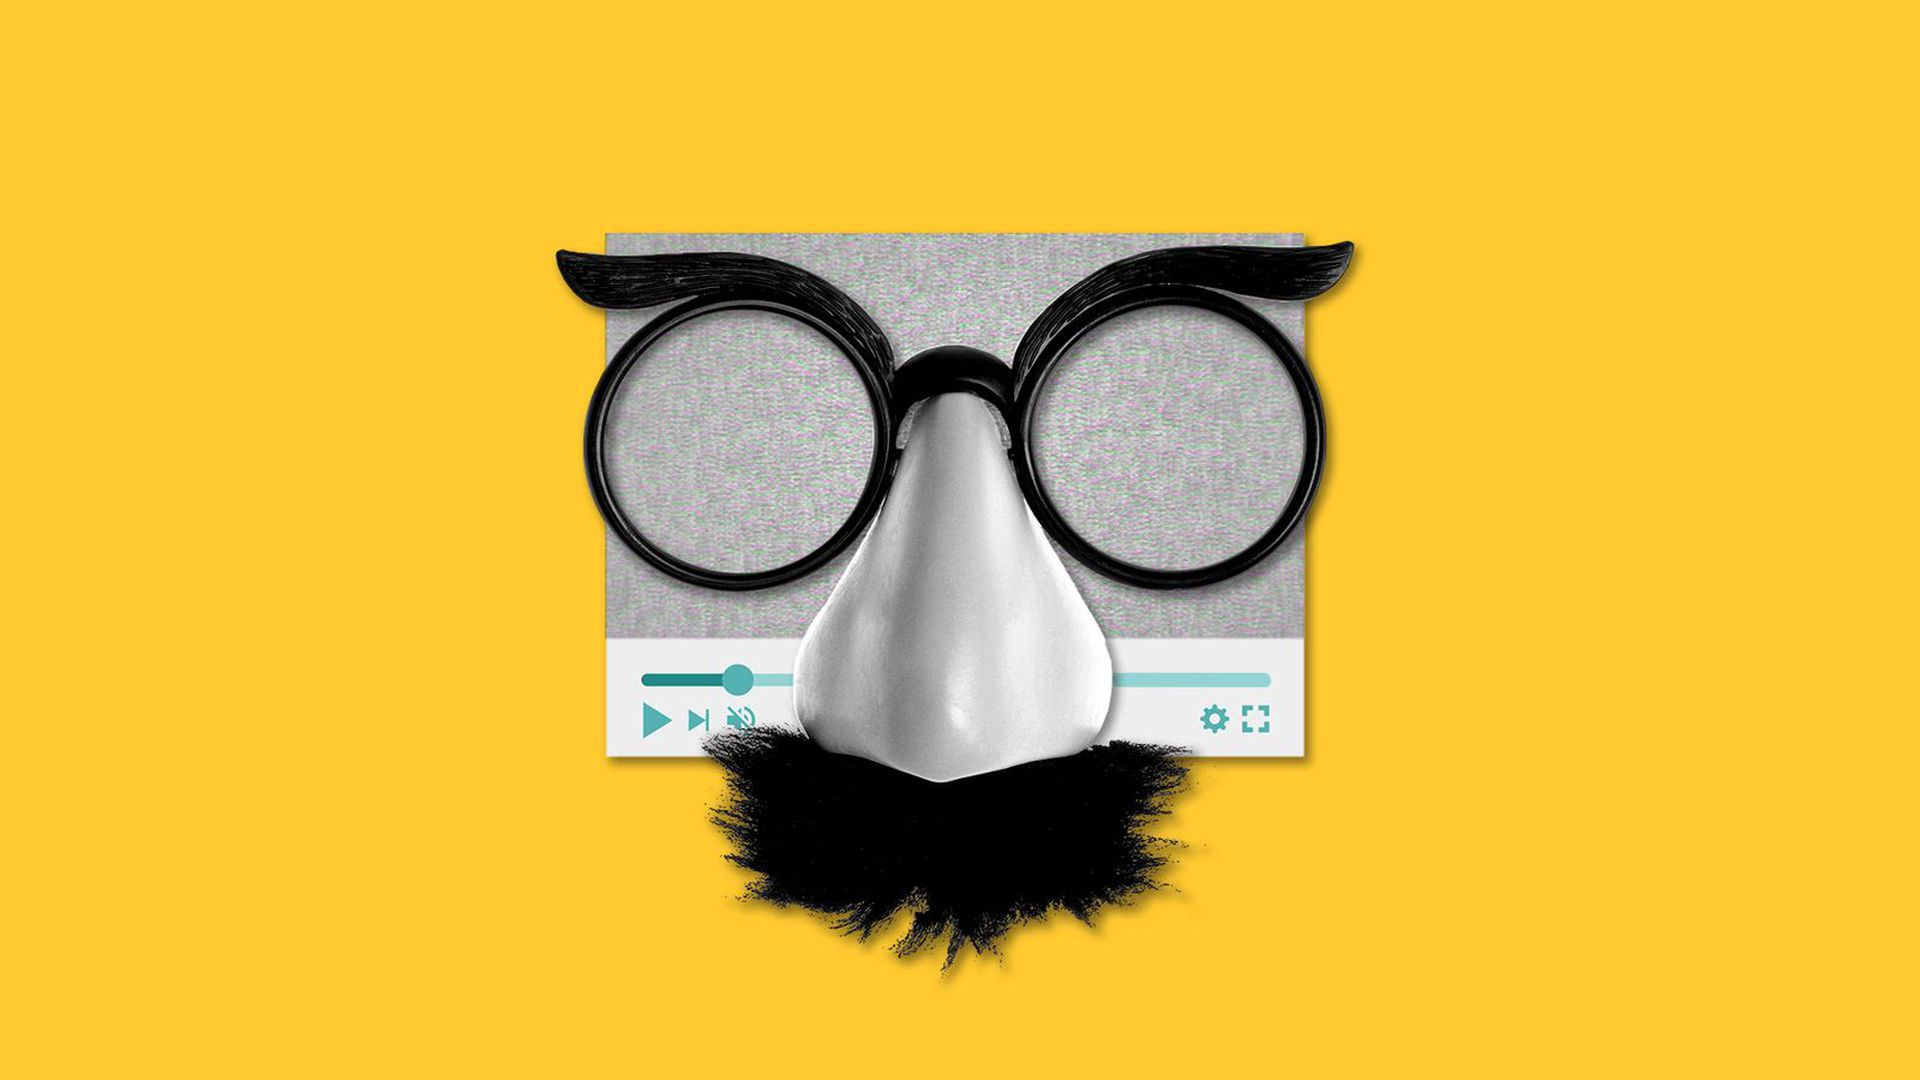 Illustration of a video player displaying static, wearing a Groucho Marx mask